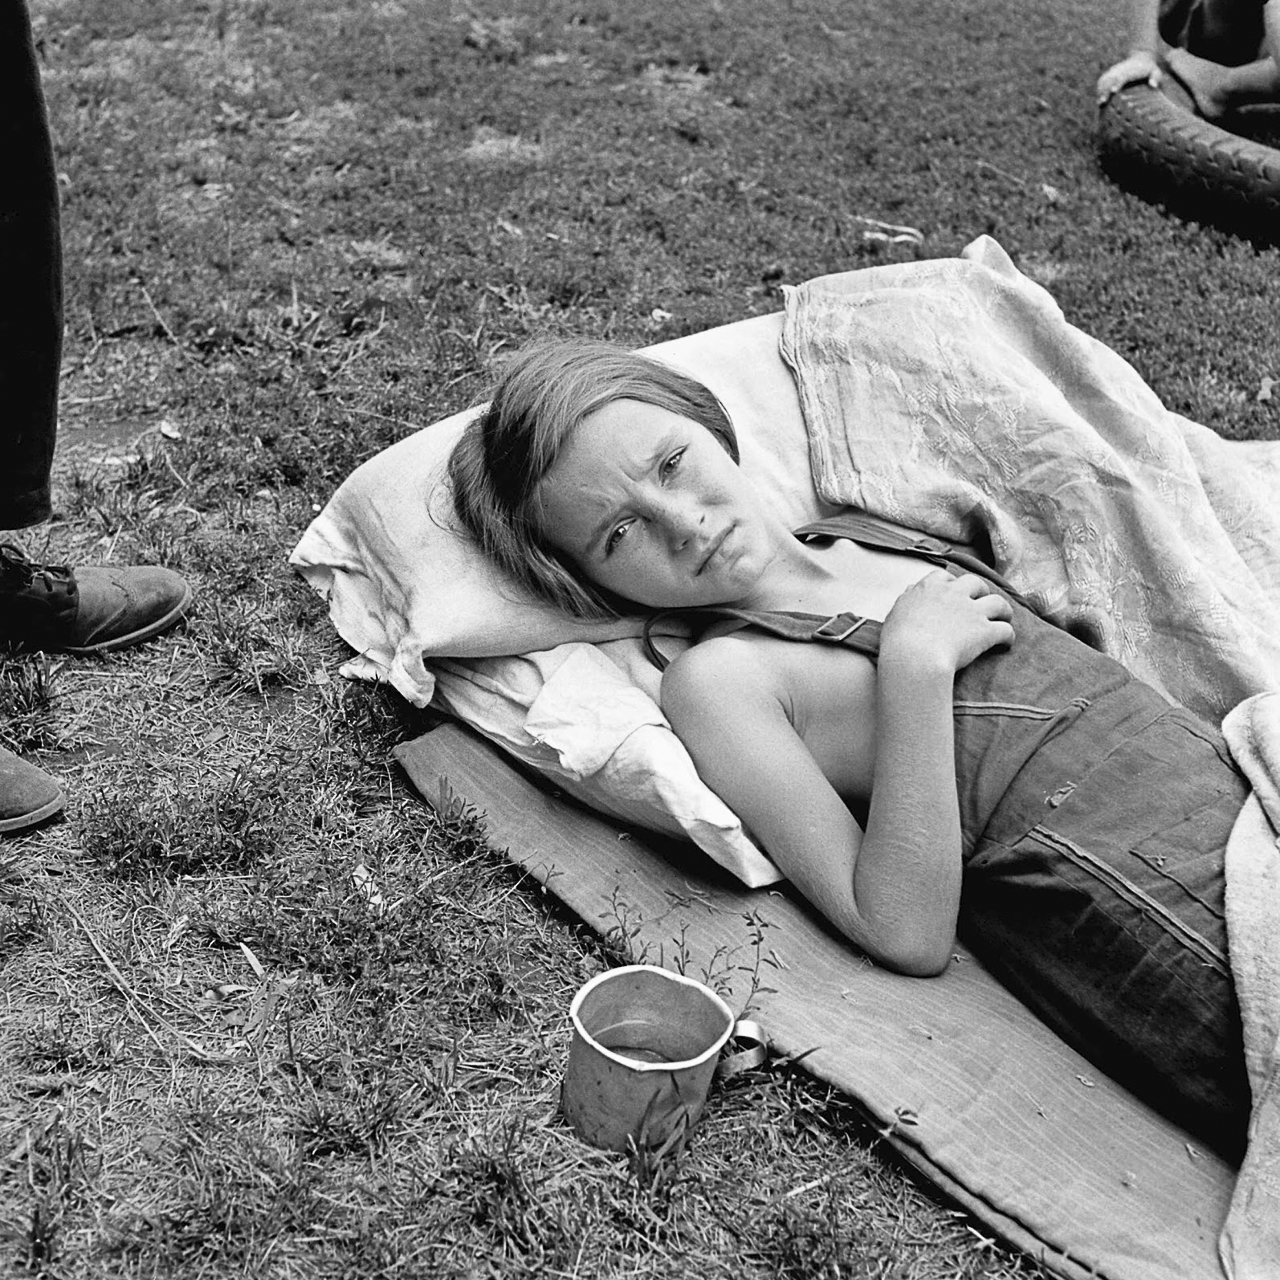 Dorothea Lange, <em>MIGRANT GIRL, 1930'S. /nA sick migrant girl resting on a makeshift bed outside, Yakima Valley, Toppenish, Washington.</em>